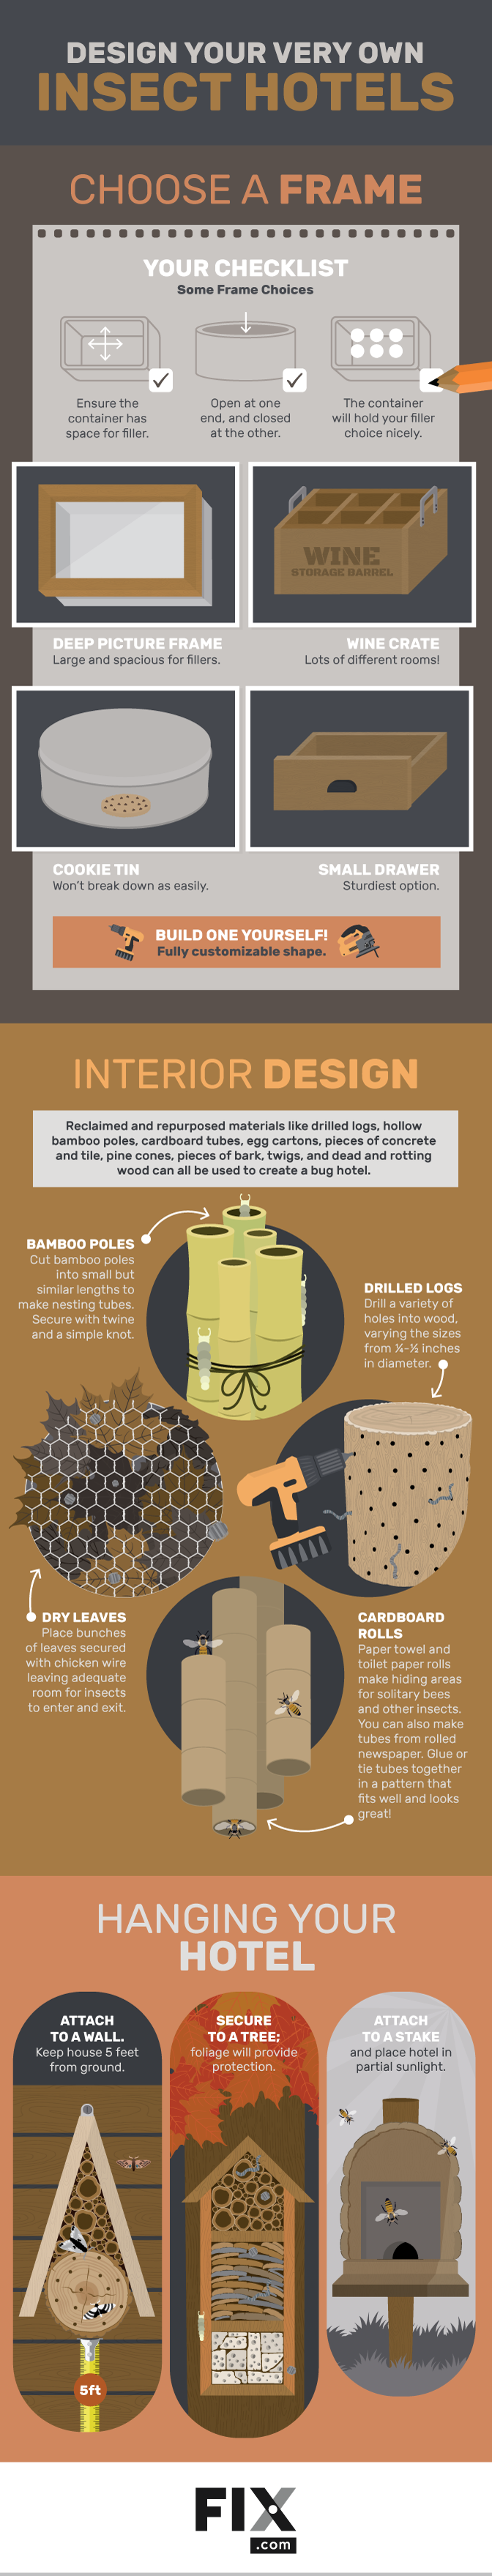 Design Your Very Own Insect Hotels